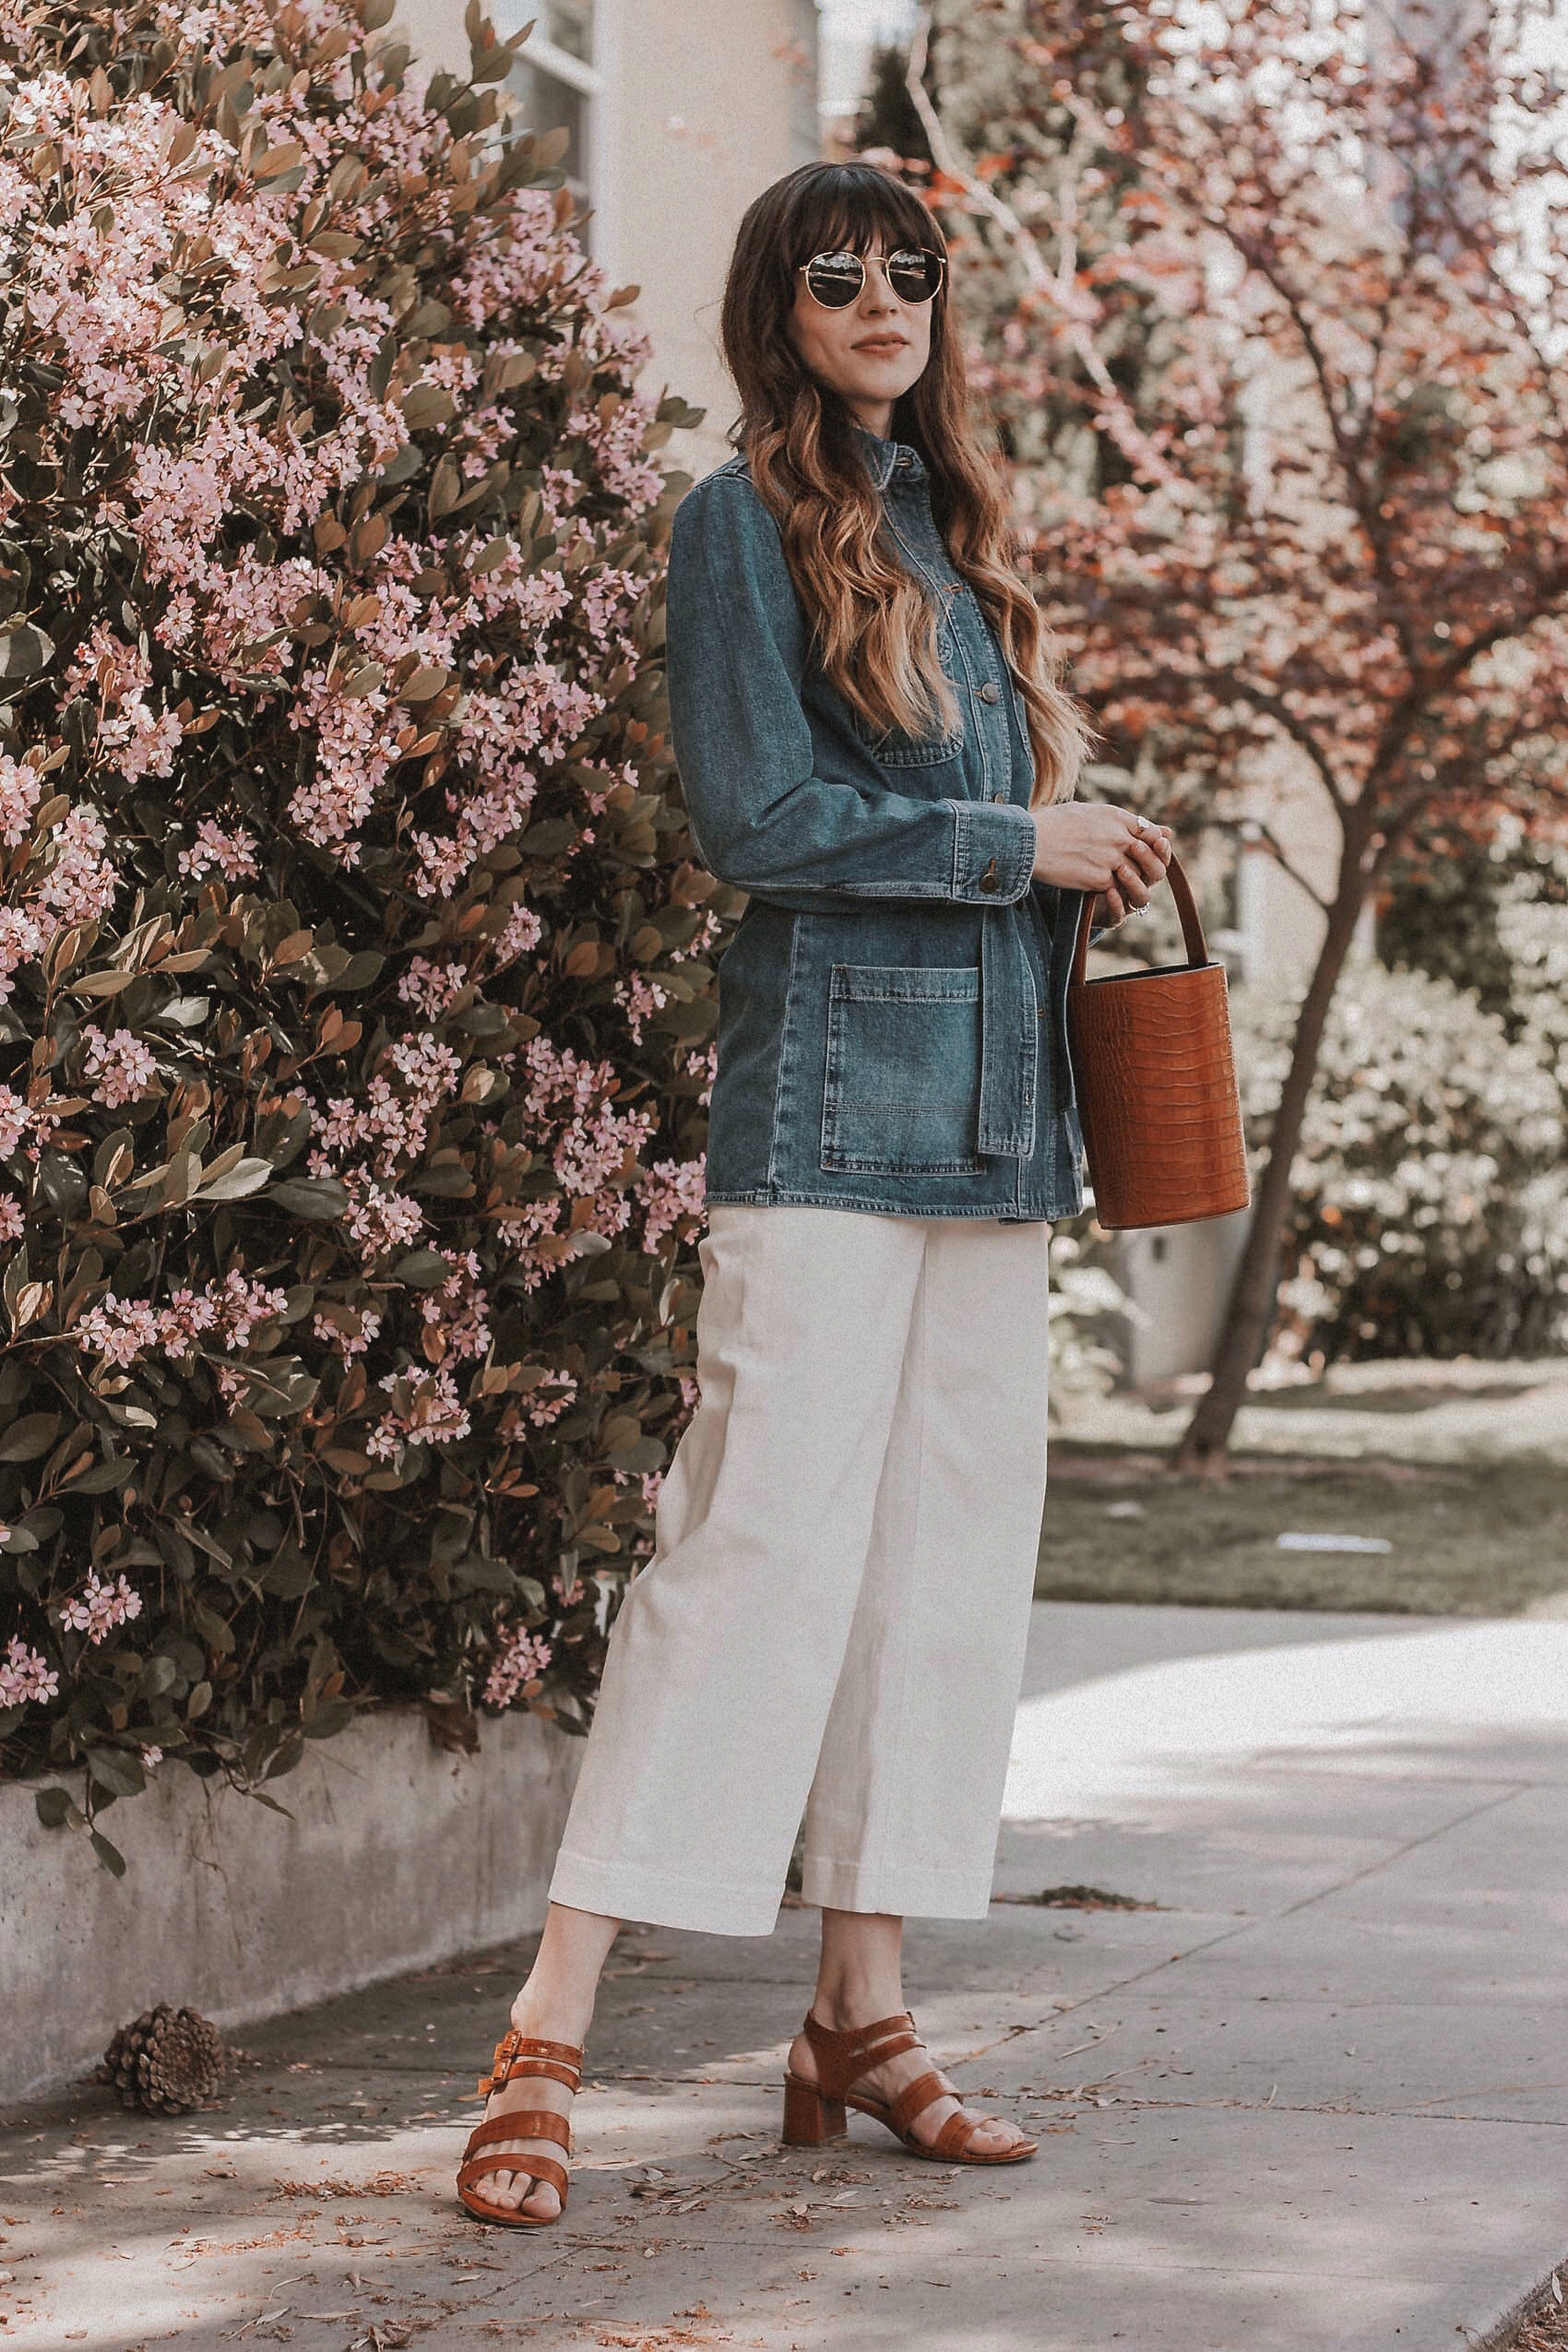 Casual Spring Outfit featuring & Other Stories Belted Denim Jacket and Everlane Wide Leg Pants